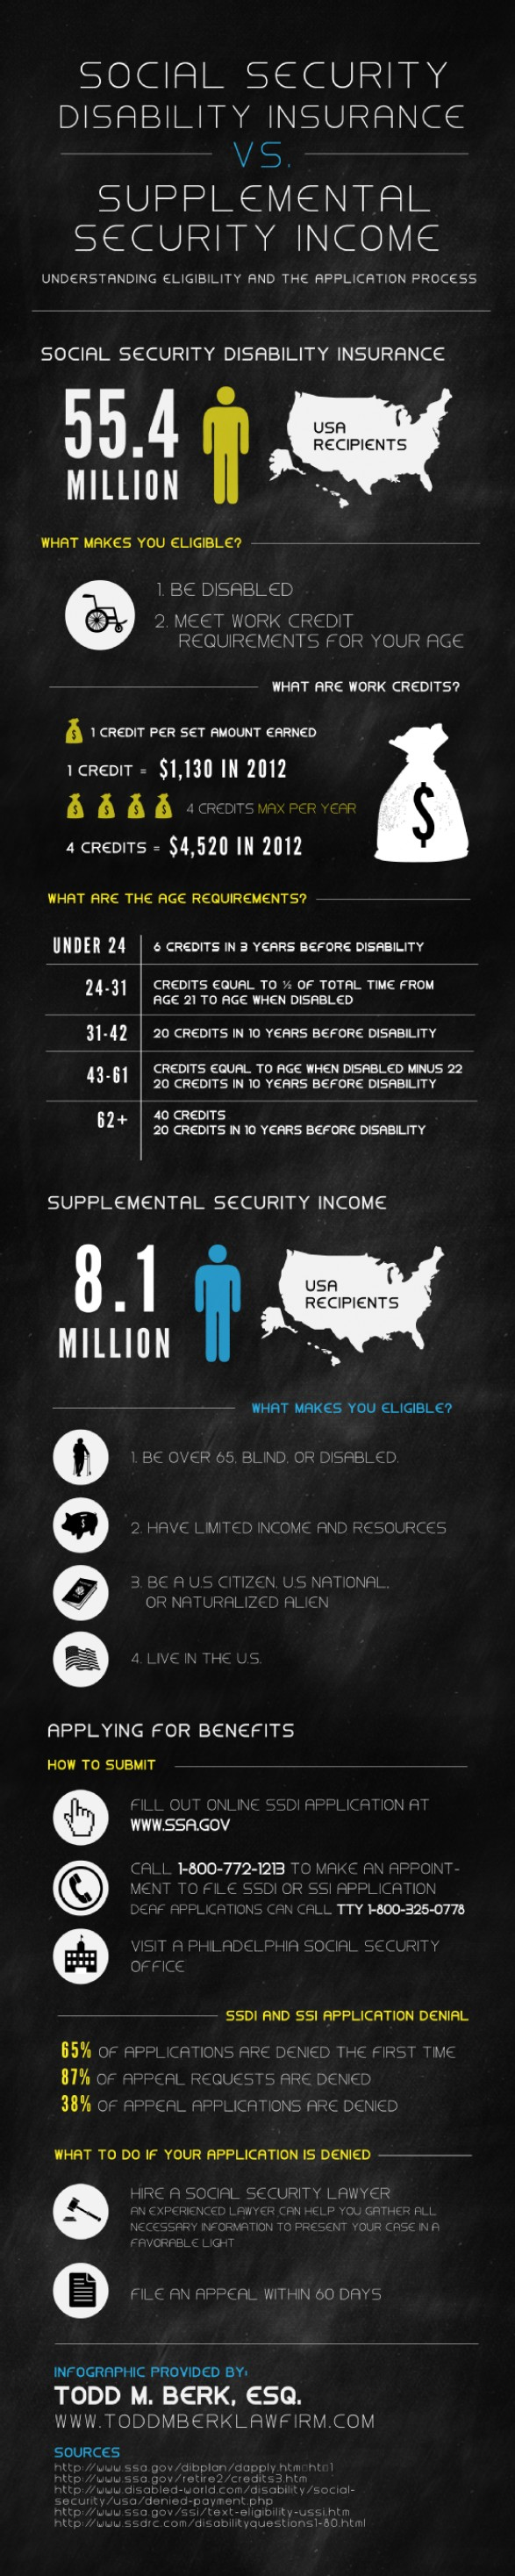 Infographic highlighting differences between SSI and SSDI